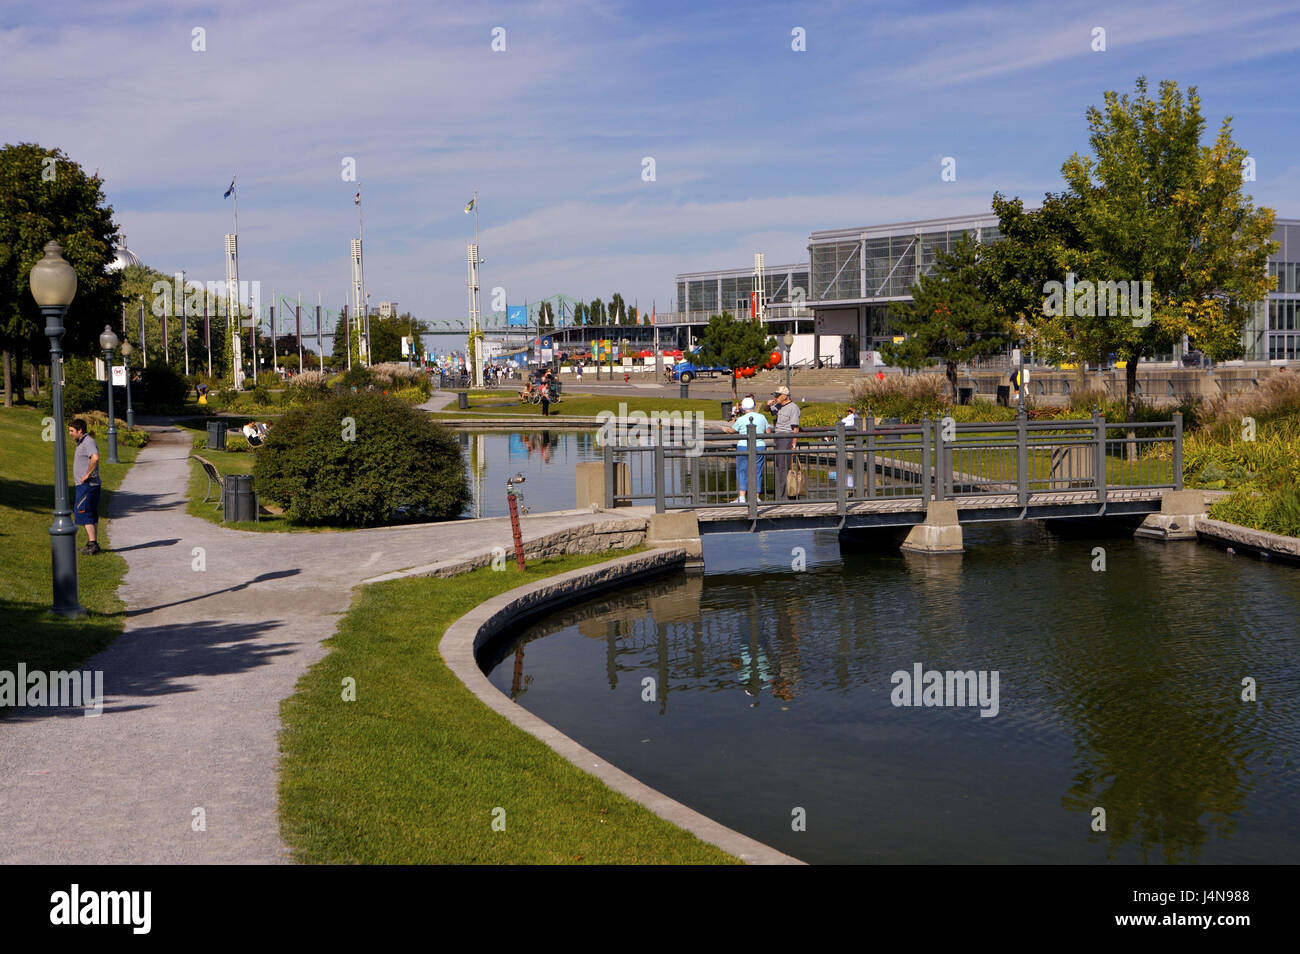 Pond, promenade of the Artistes, tourist, Old Montreal, Old port, King Edward Basin, Montreal, Canada, - Stock Image